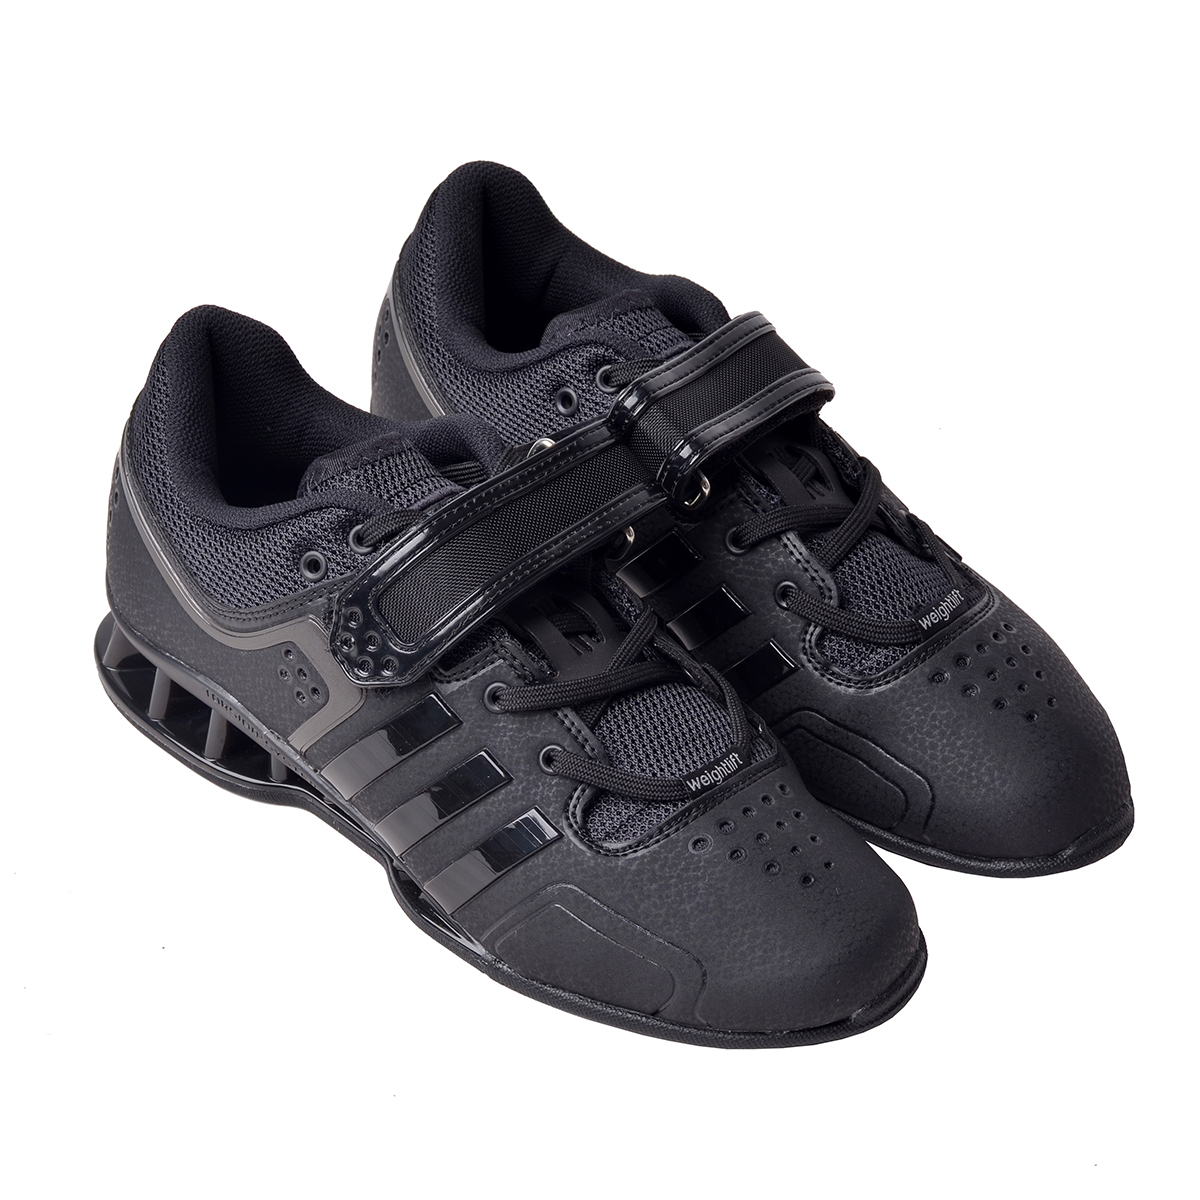 new style 21175 b3cba Adi Power Black Weight Lifting Shoes